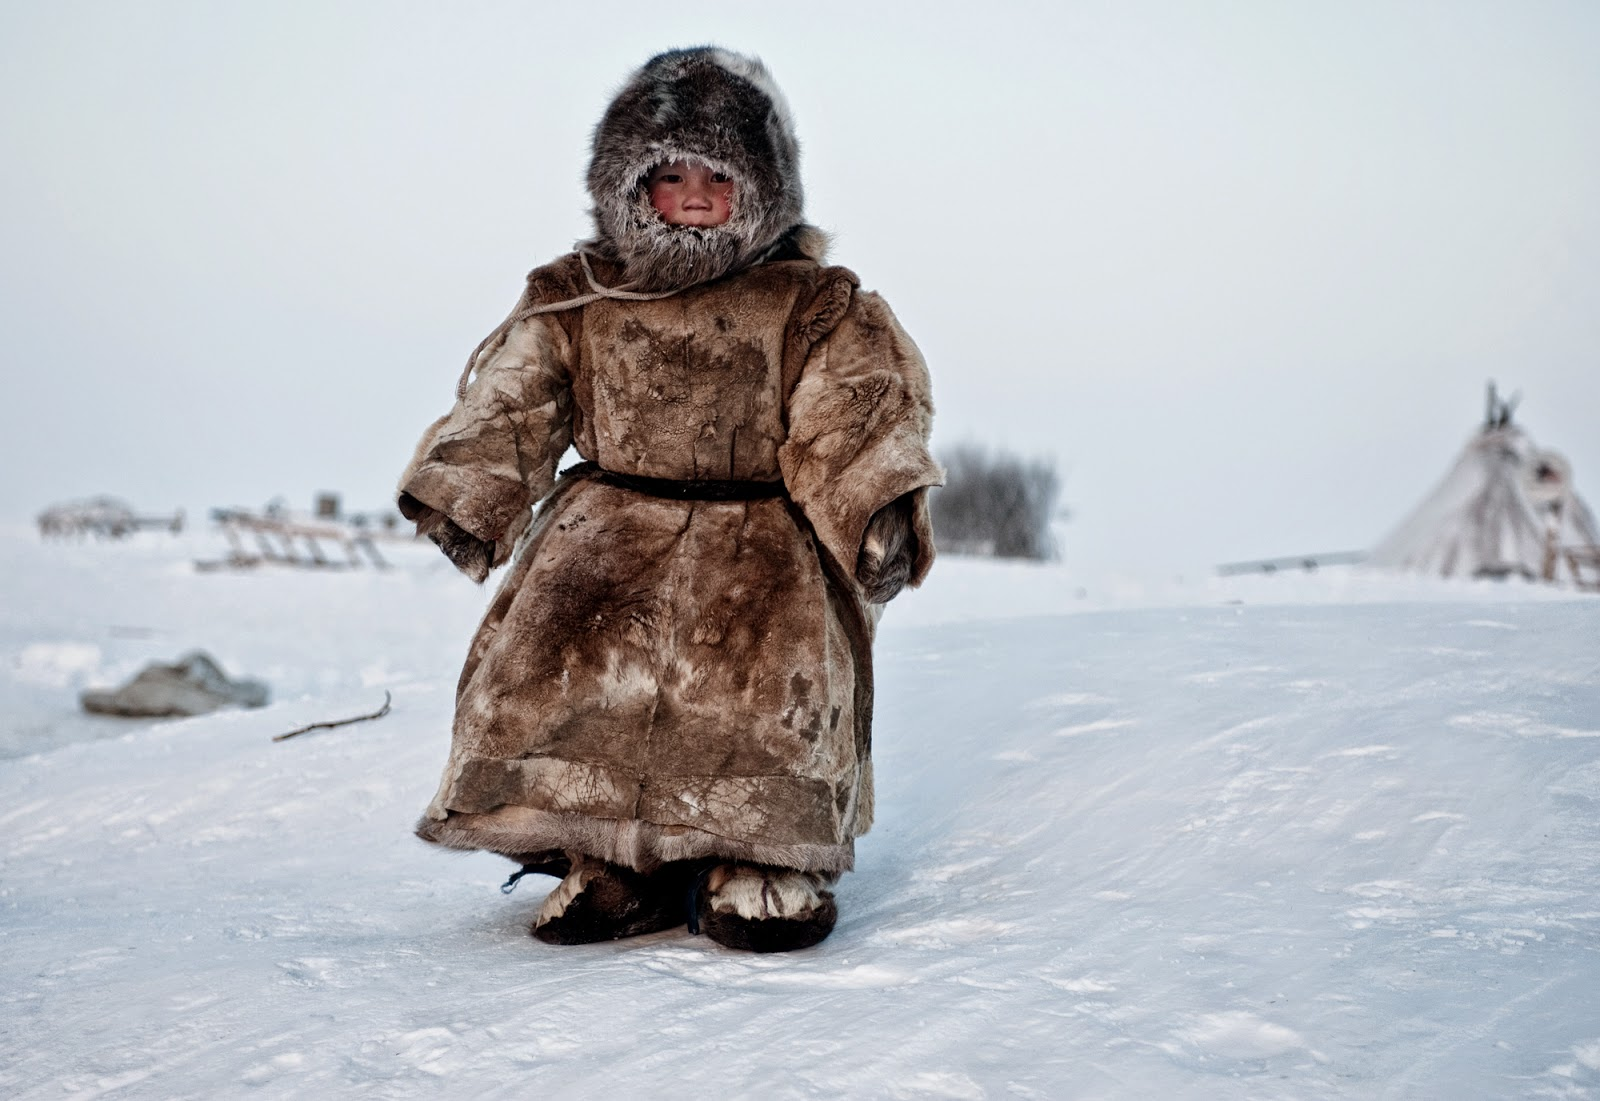 Copyright: ©Simon Morris, United Kingdom, Shortlist, Smile, Open, 2015 Sony World Photography Awards. Image Name: On the Tundra.... Description: A Young Nenets boy plays in -40 degrees on Yamal in the Winter in Siberia.